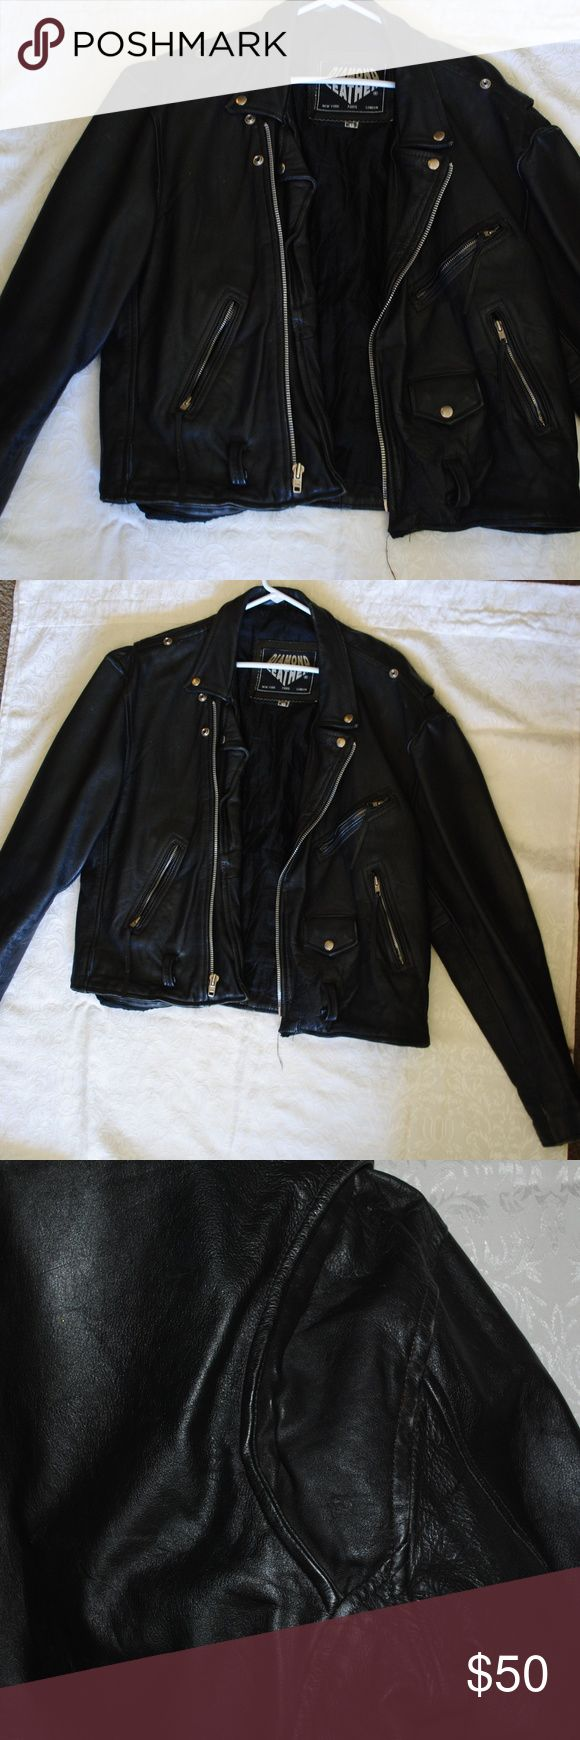 Men's Leather Jacket Motorcycle/Fashion leather jacket Euro 46 so a US small/medium. The jacket is fairly heavy, so if you're looking for a lighter faux jacket this is not it. This is NOT faux leather. Brand new these jackets run around $200. I truly believe it could fit in women's sizing as well. It fits my torso well (and I'm usually a Medium); however, the sleeves are approx. two hand lengths too long on my arms. Very minimal, unnoticeable wear. Diamond Leather Jackets & Coats